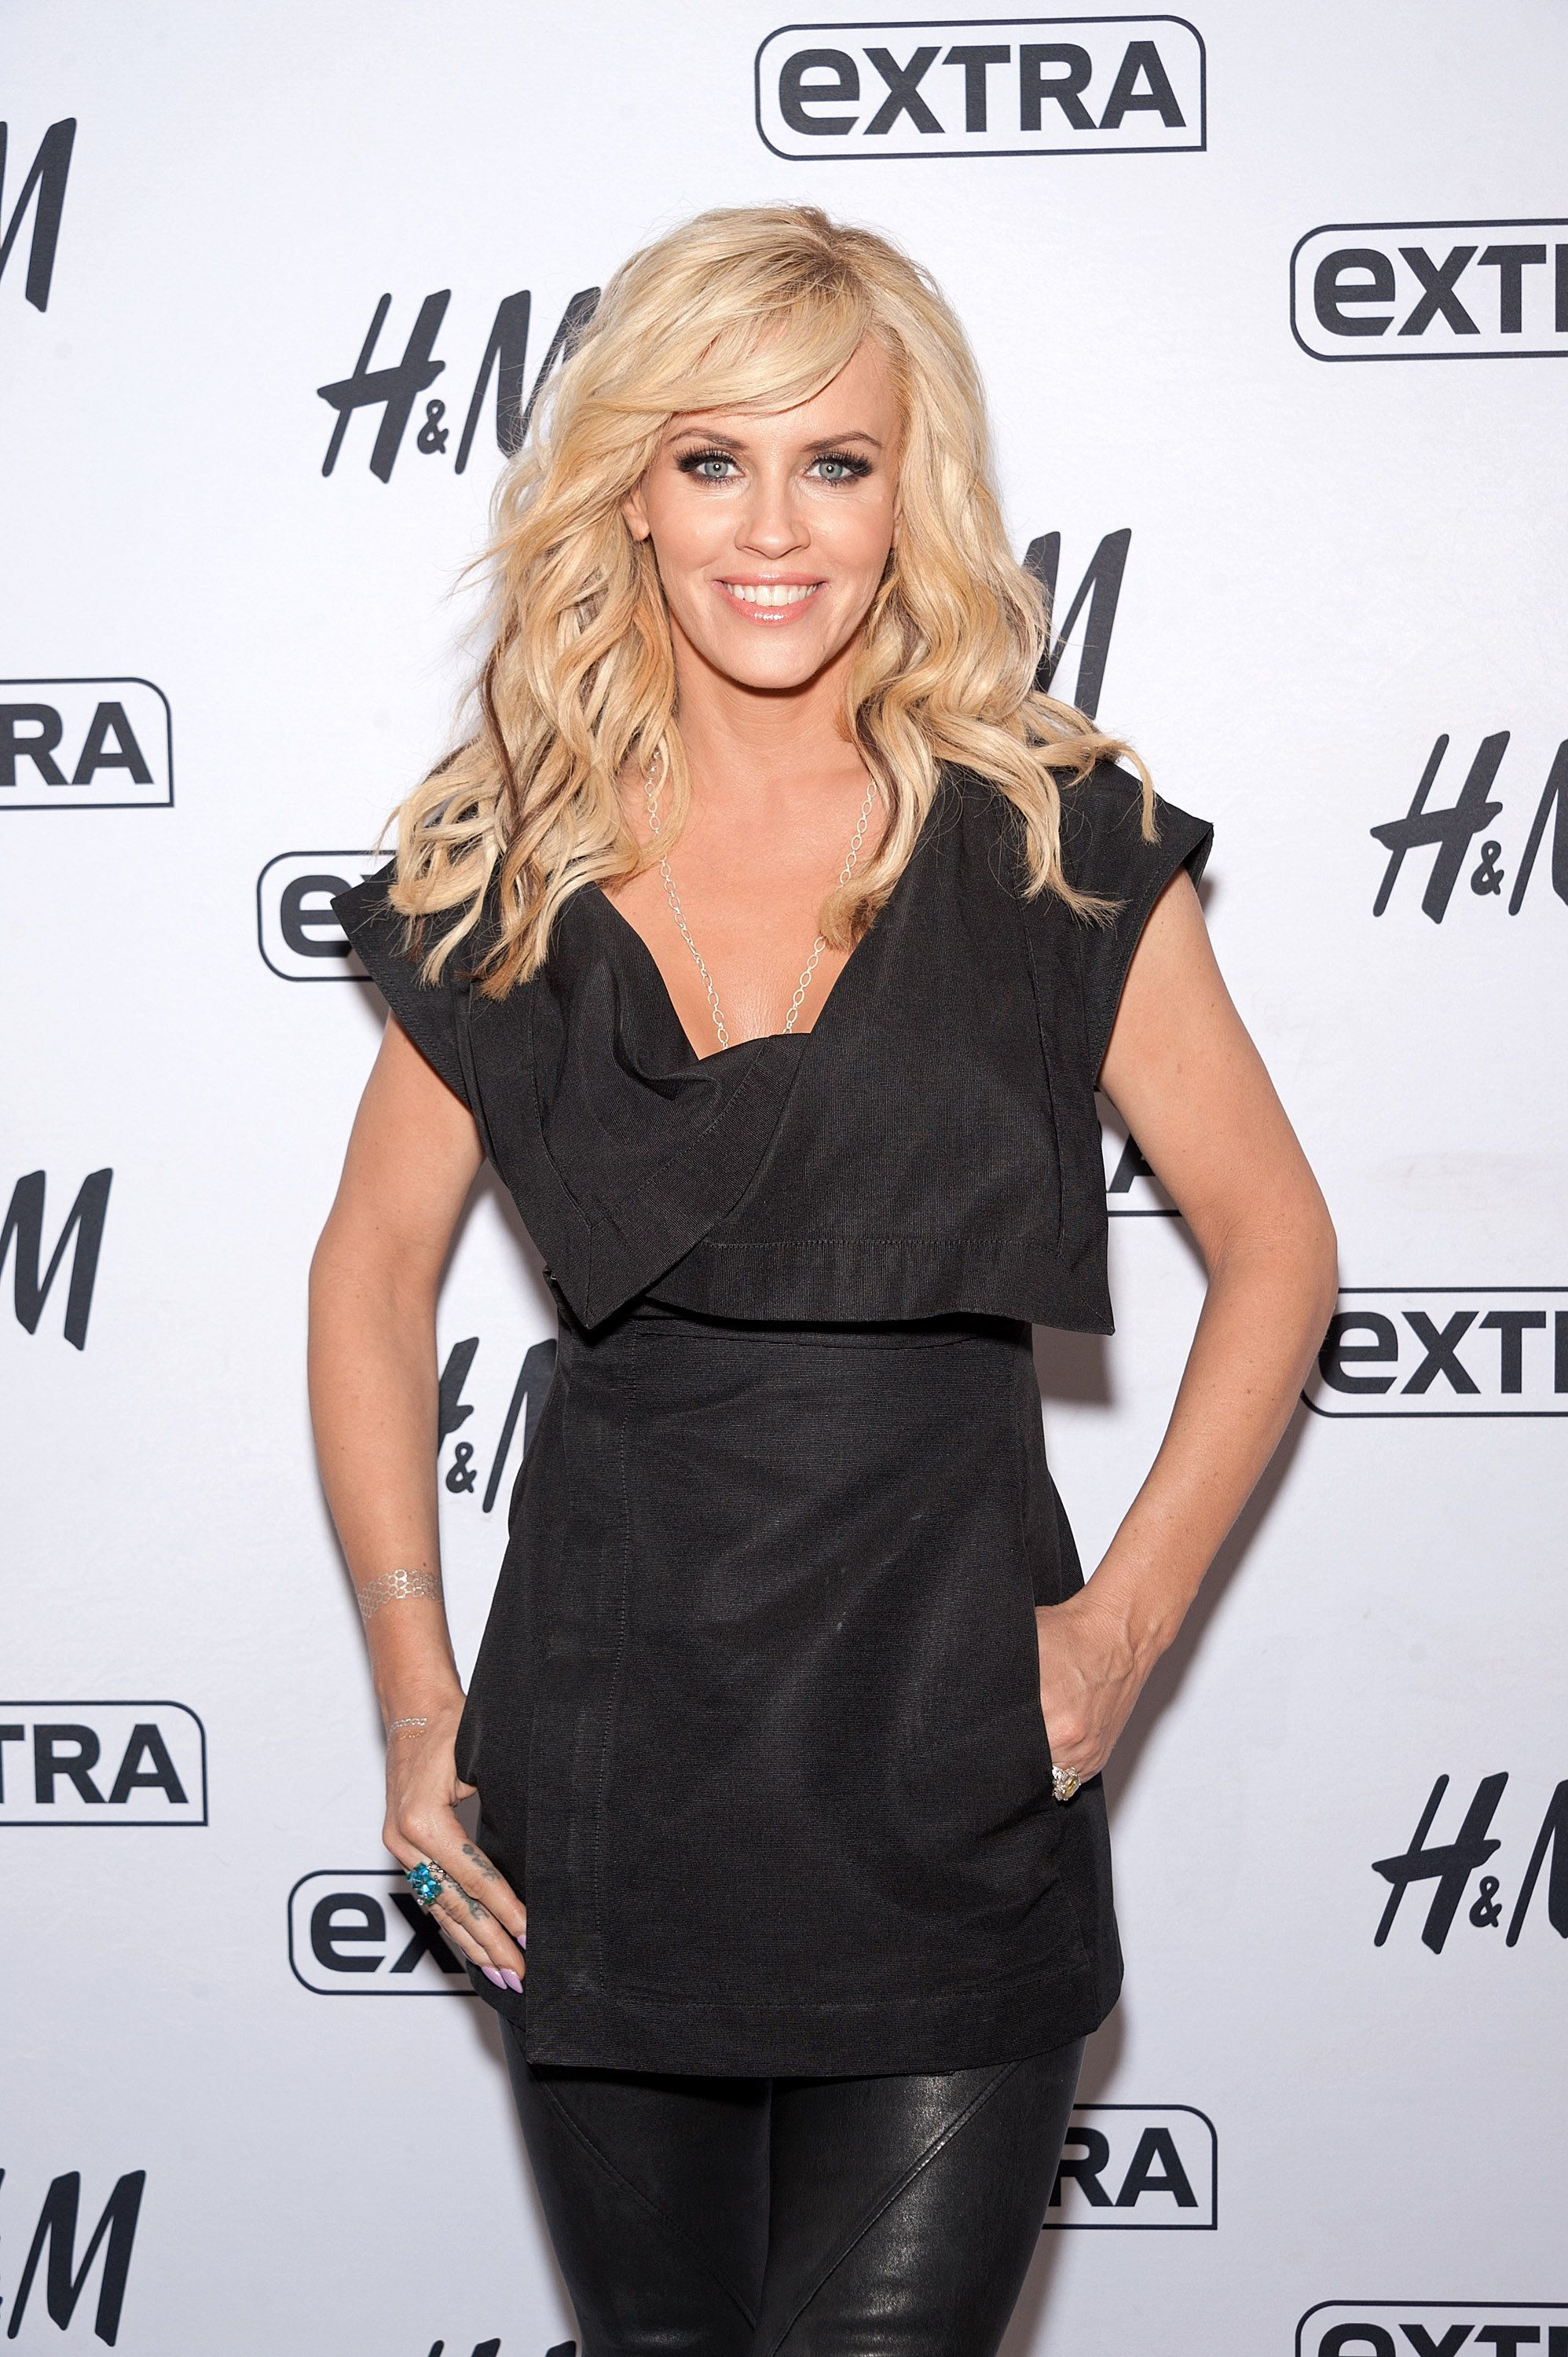 NEW YORK, NY - JUNE 15:  Jenny McCarthy visits 'Extra' at their New York studios at H&M in Times Square on June 15, 2015 in New York City.  (Photo by D Dipasupil/Getty Images for Extra)